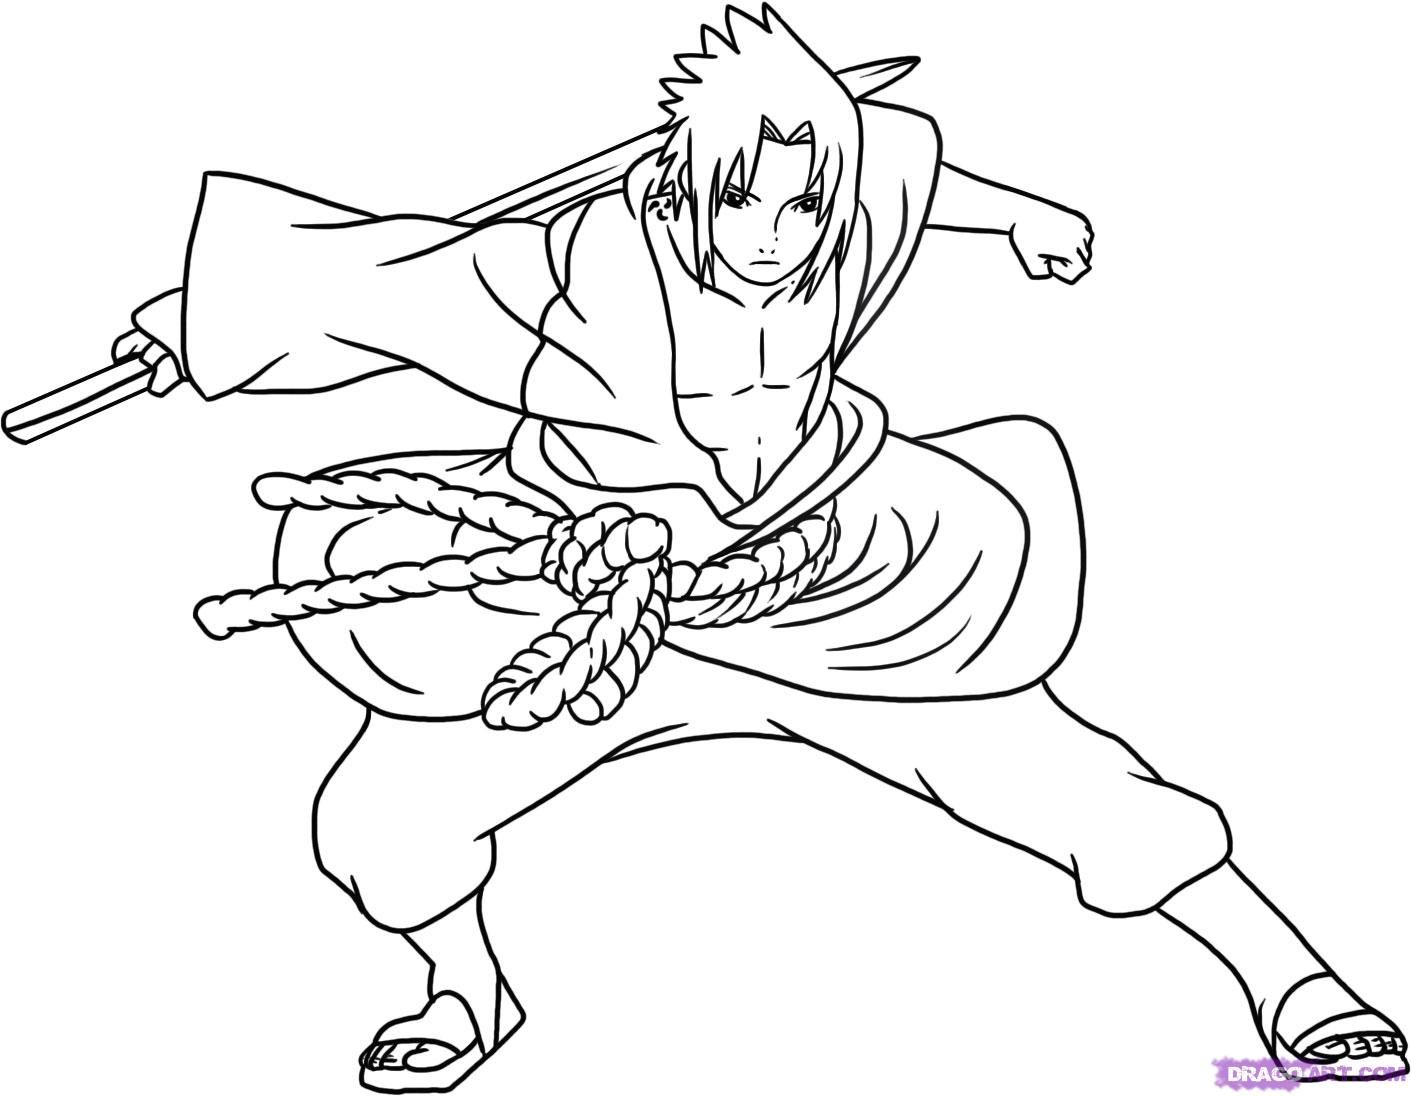 Anime Sasuke Uchiha Coloring Pages